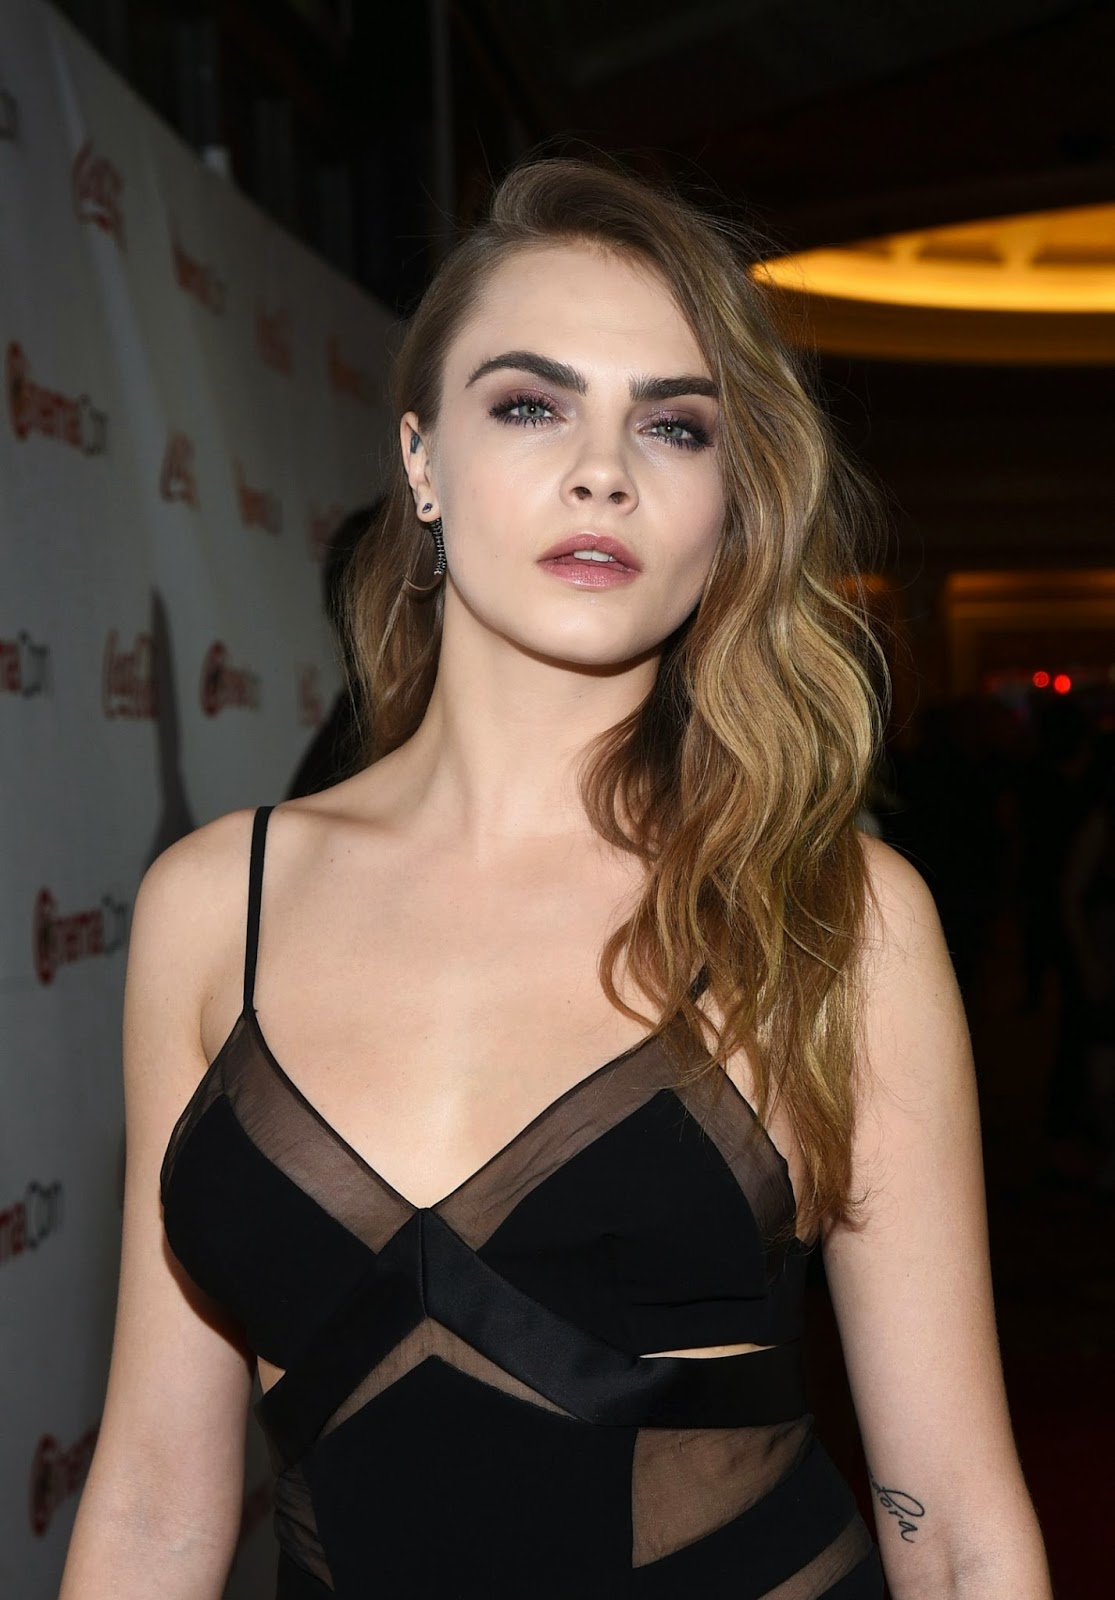 Cara Delevingne In A Sheer Chemise At The Cinemacon Big